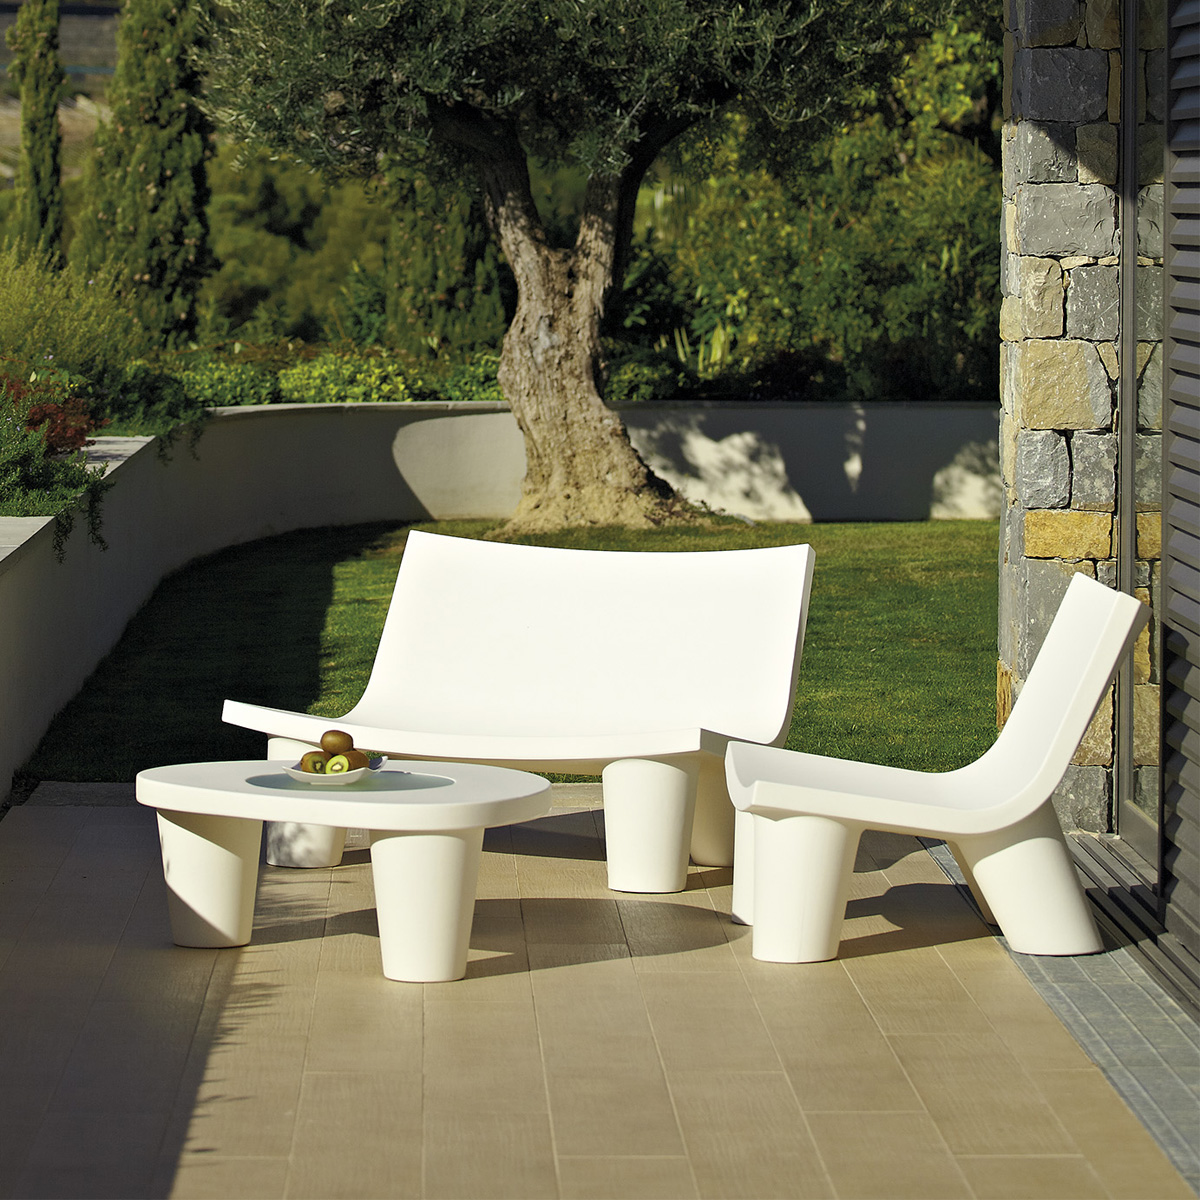 Low Lita Love lounge chair from Slide